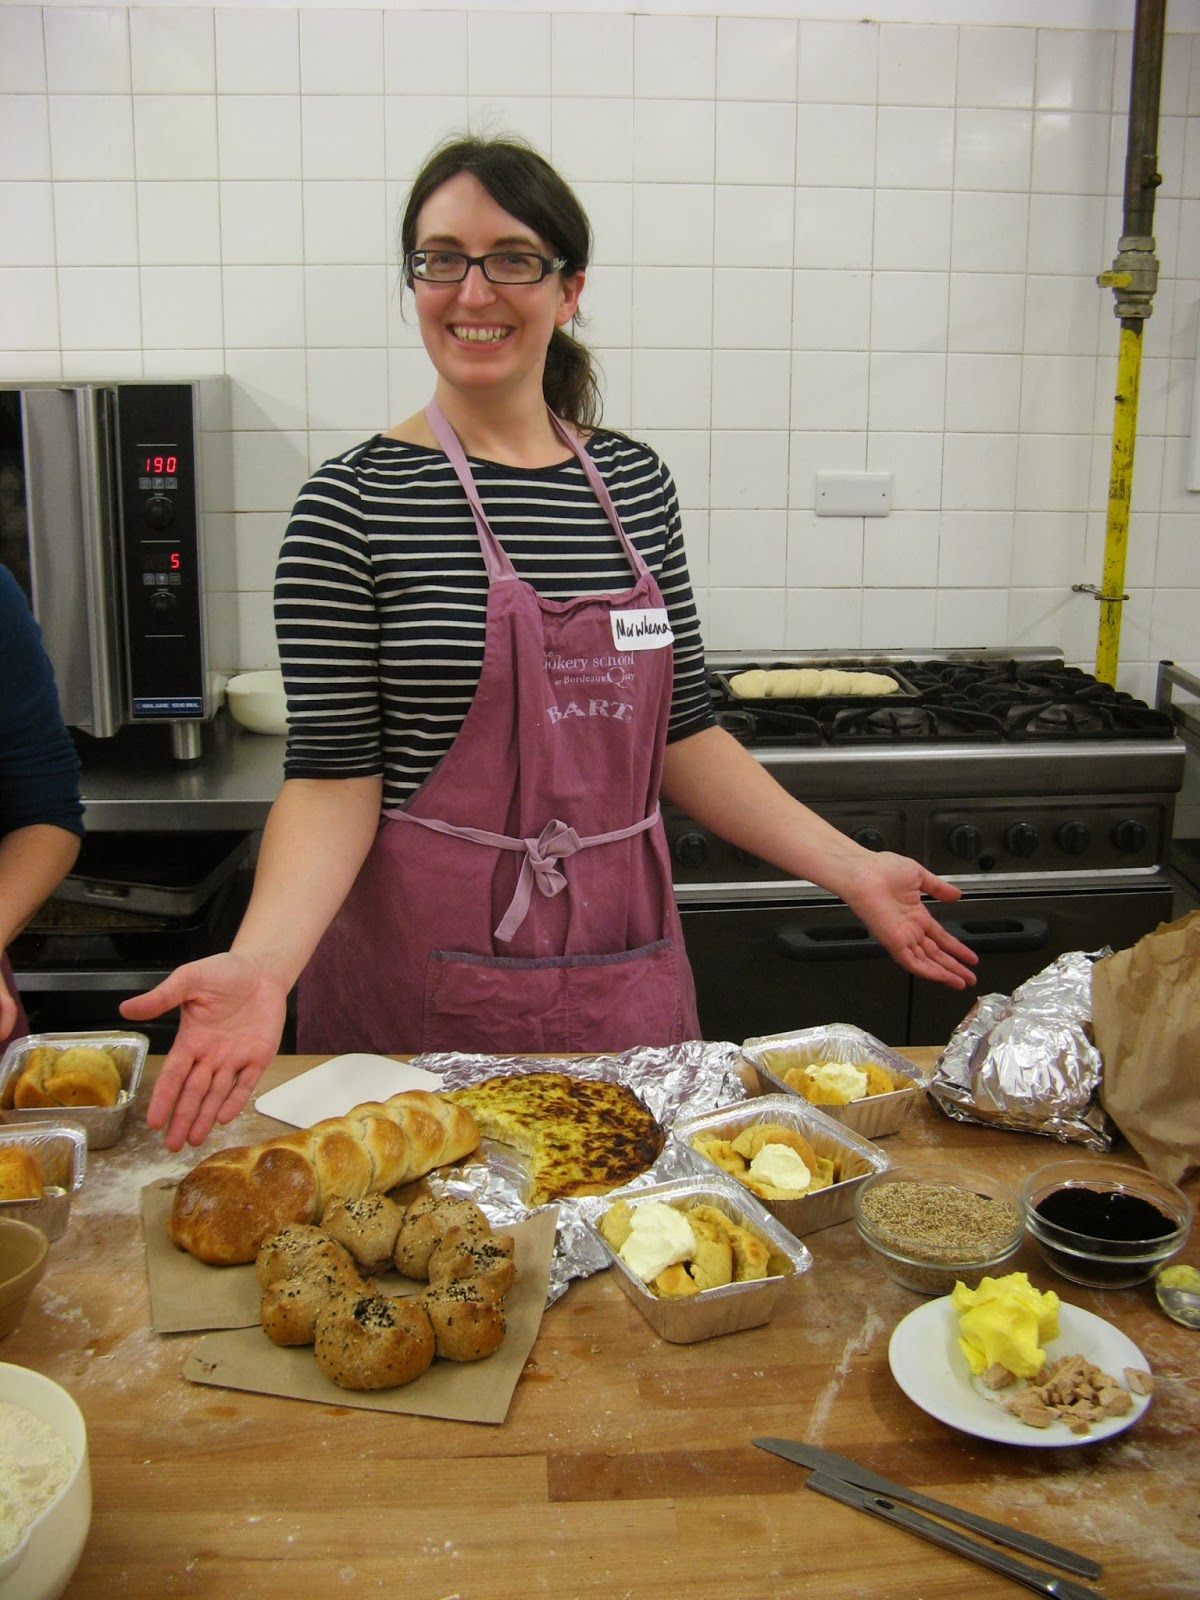 I went on an evening workshop with The Square Food Foundation in Bristol. Square Food Foundation